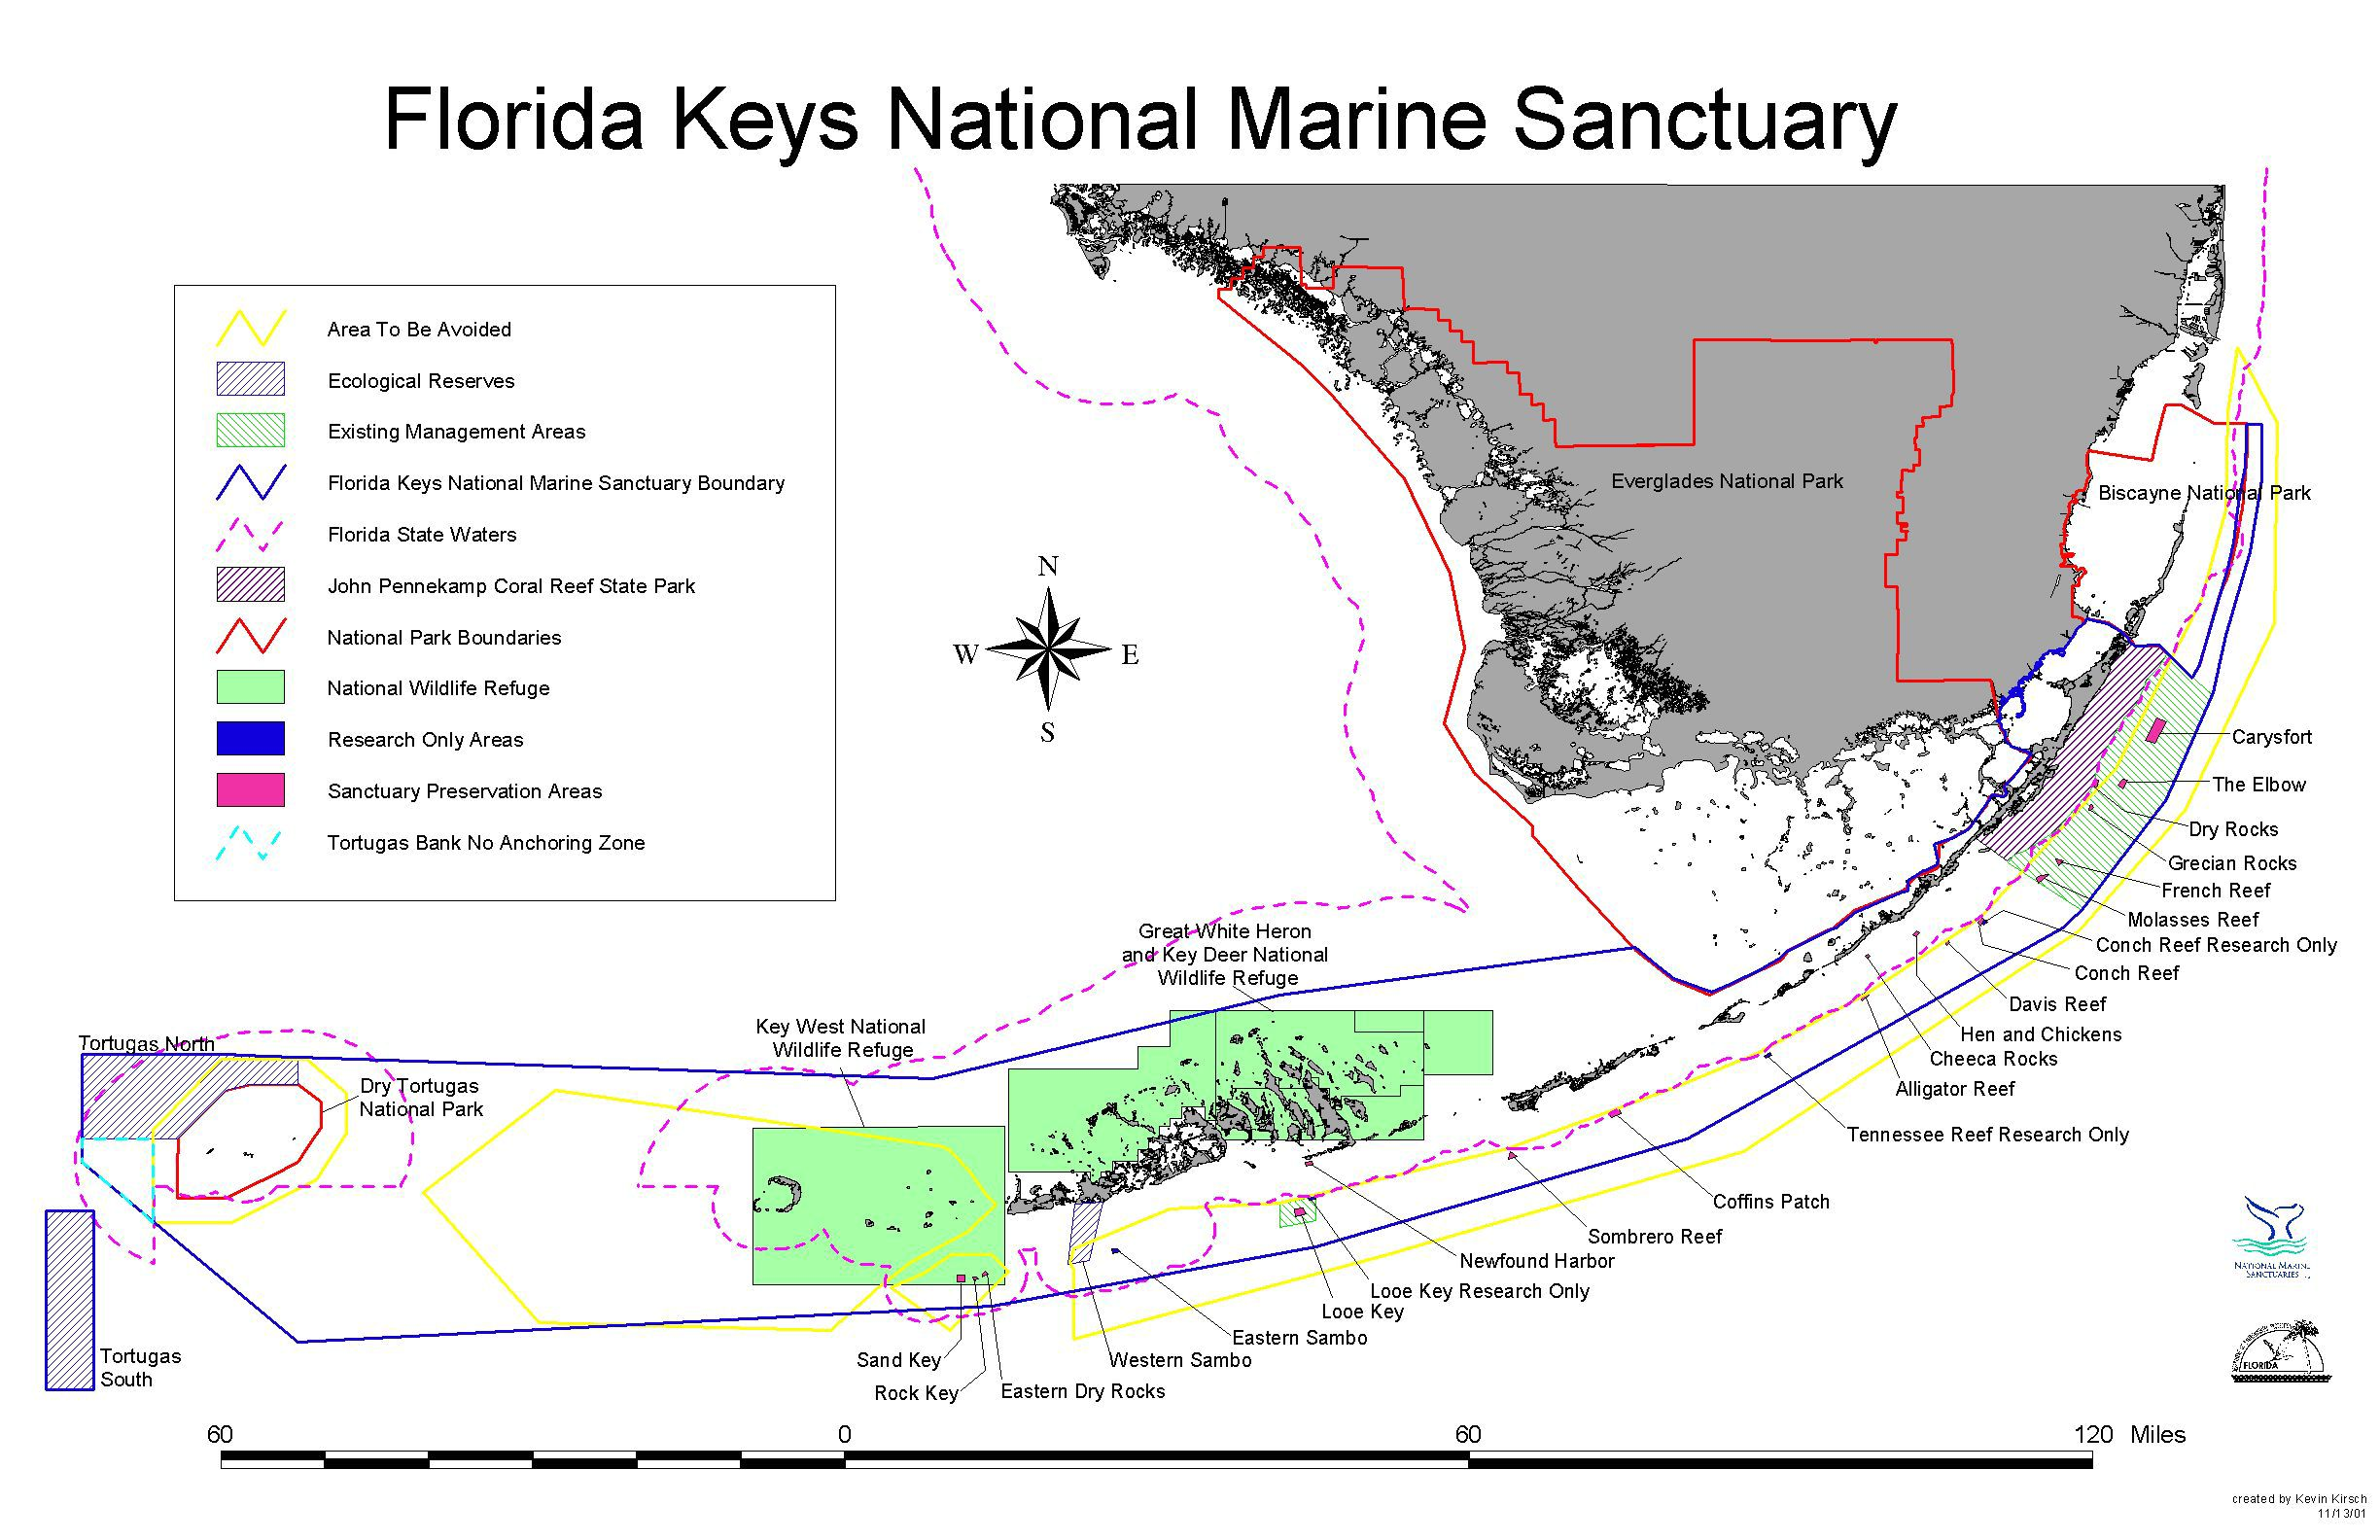 Where To Catch Fish In Miami Dade County Florida National And - Florida map state parks